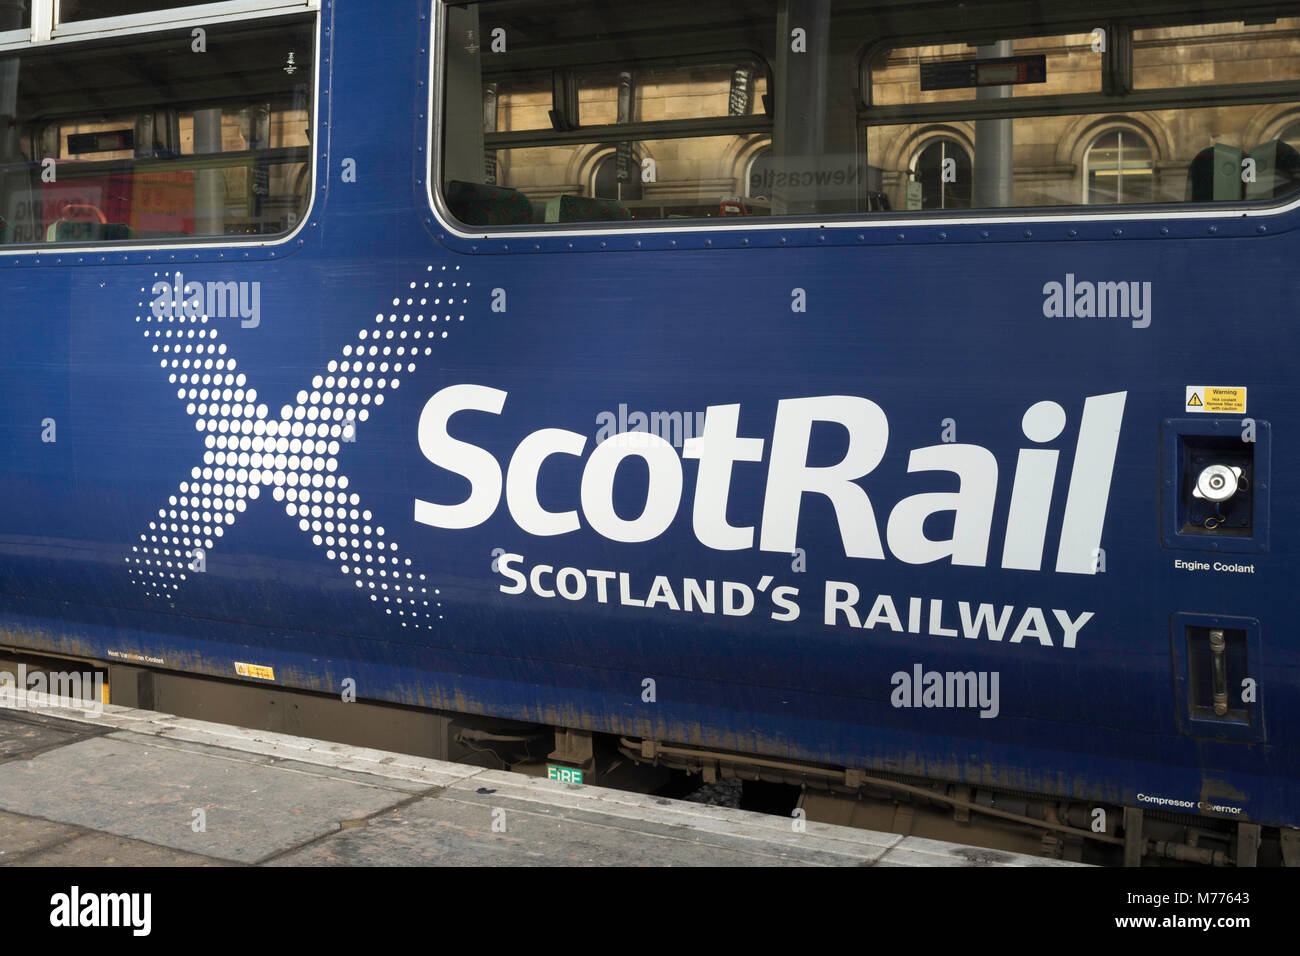 ScotRail logo on the side of a carriage, Scotland's Railway. - Stock Image